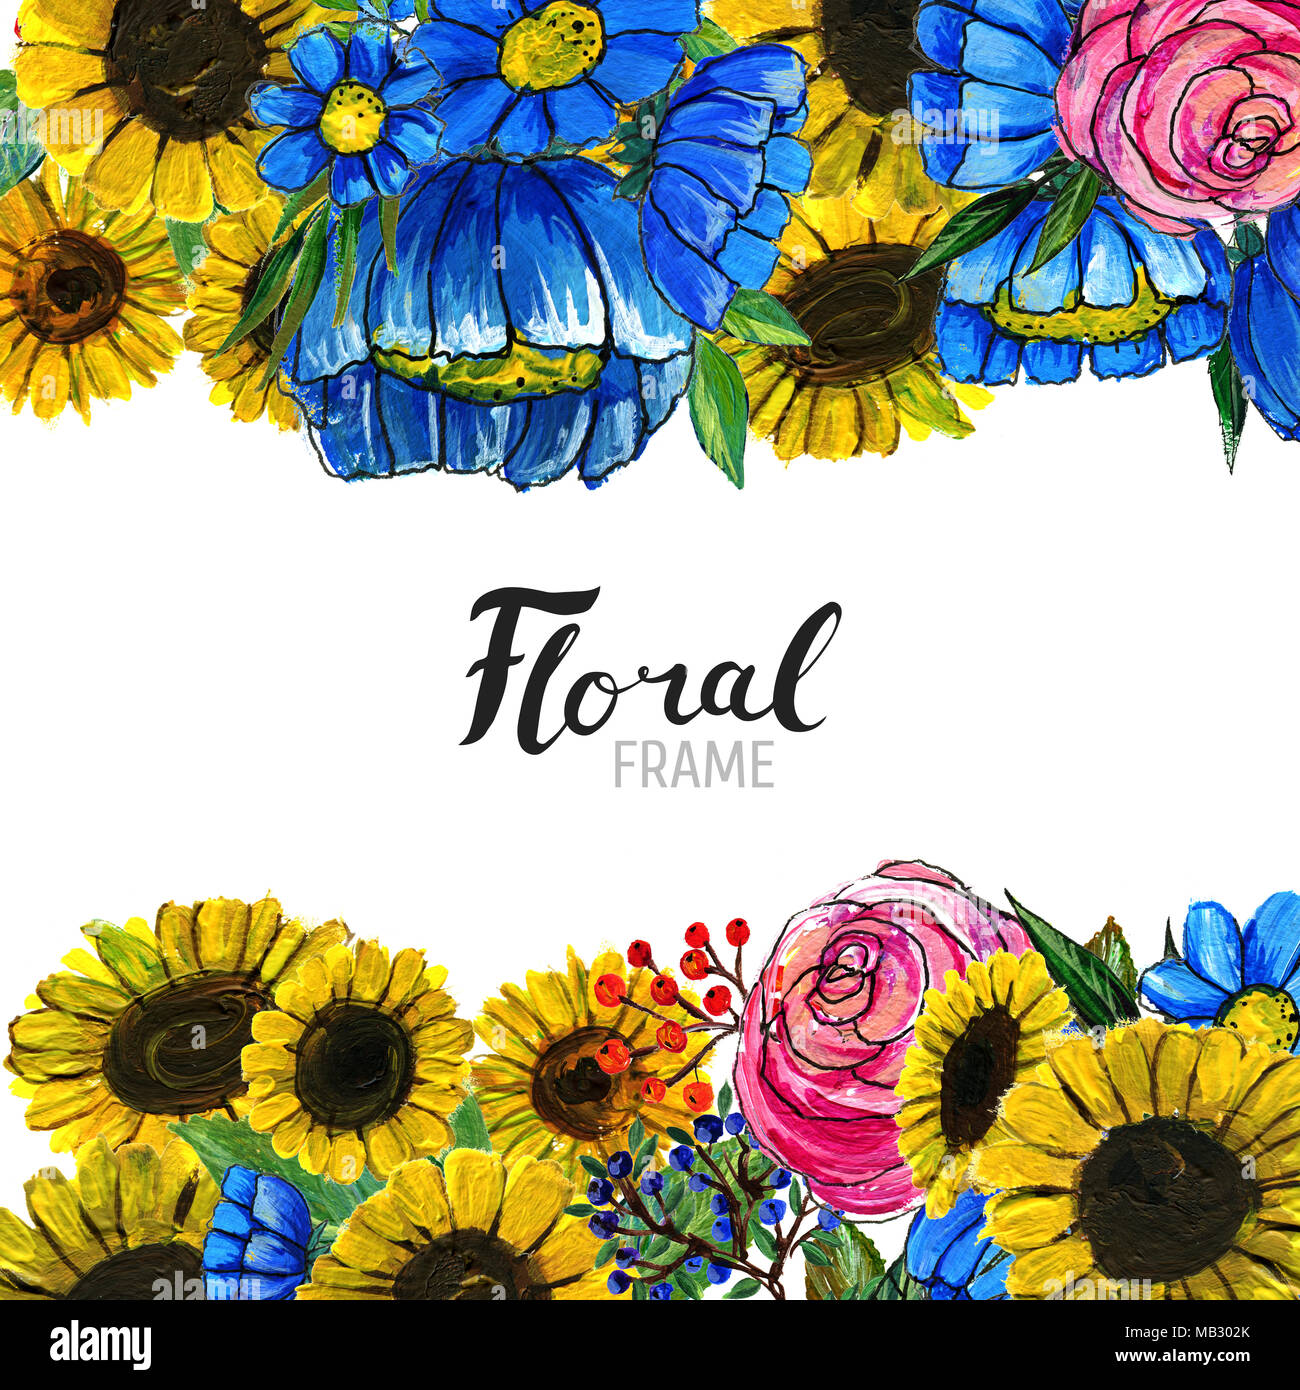 Watercolor Floral Background Hand Painted Border Of Flowers Good For Invitations And Greeting Cards Sunflowers Roses Berries Blue Wildflowers